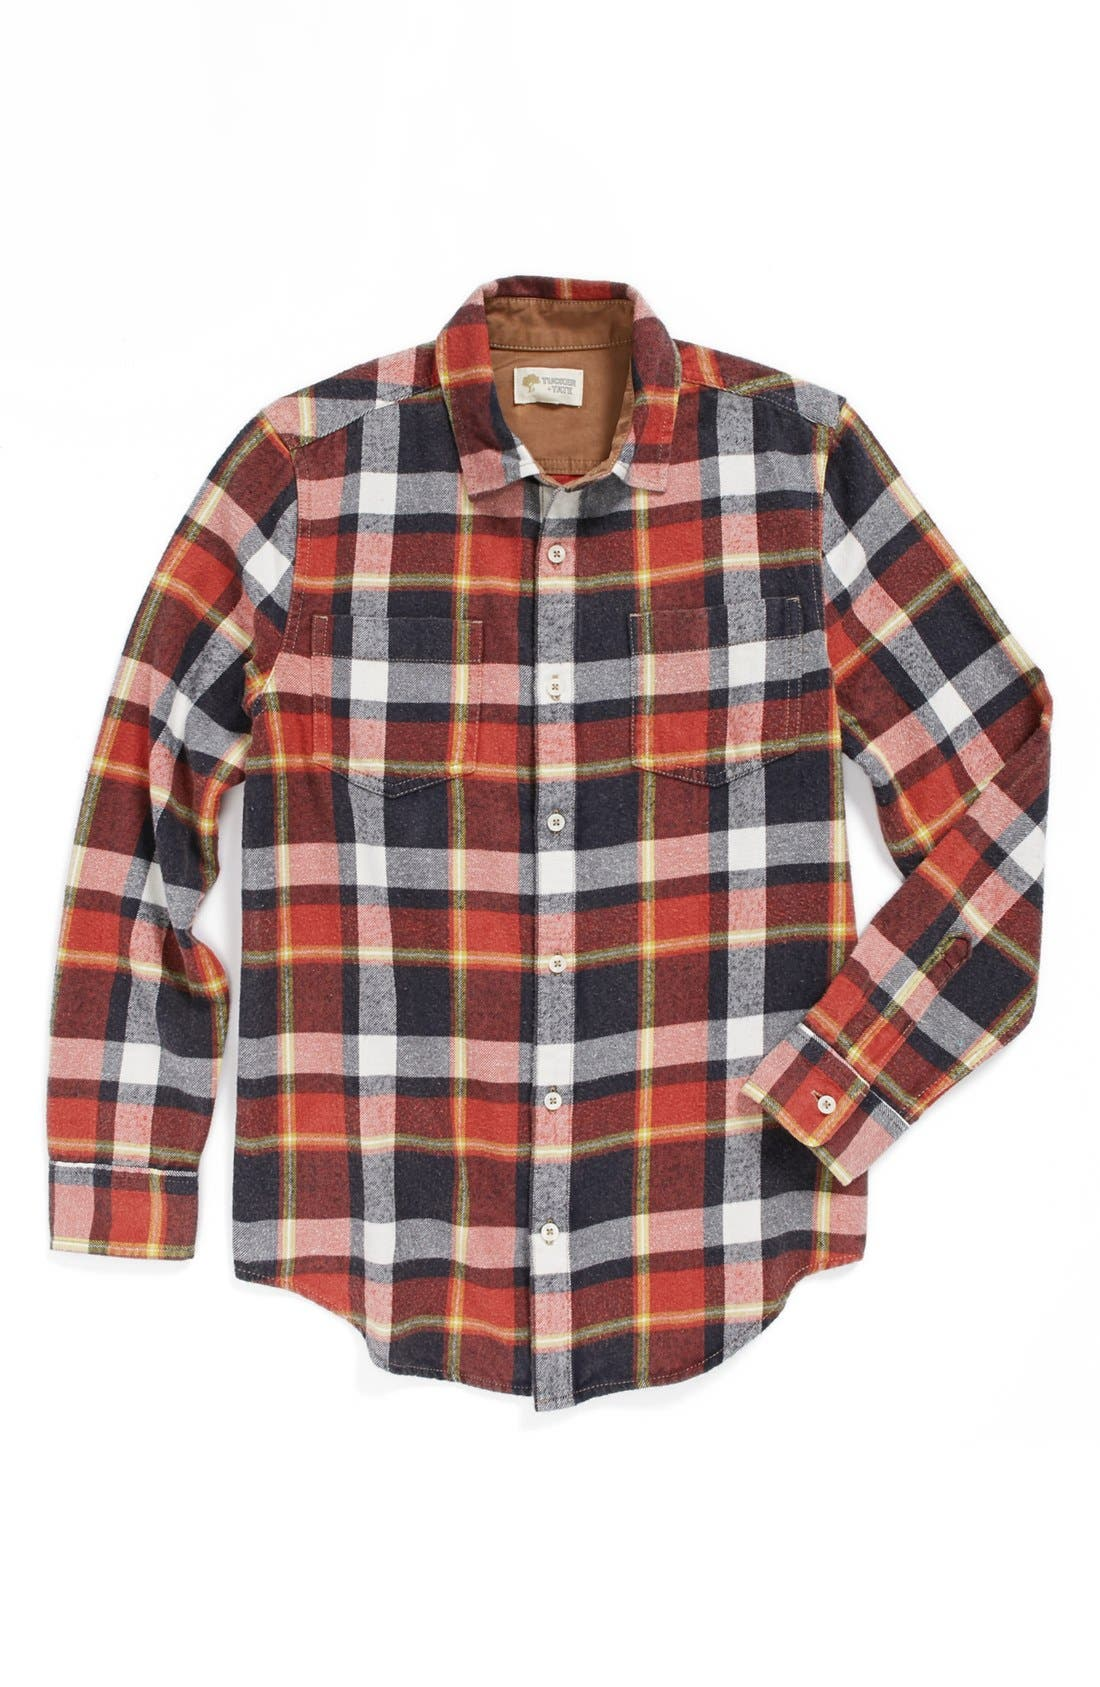 Main Image - Tucker + Tate 'Erland' Flannel Shirt (Big Boys)